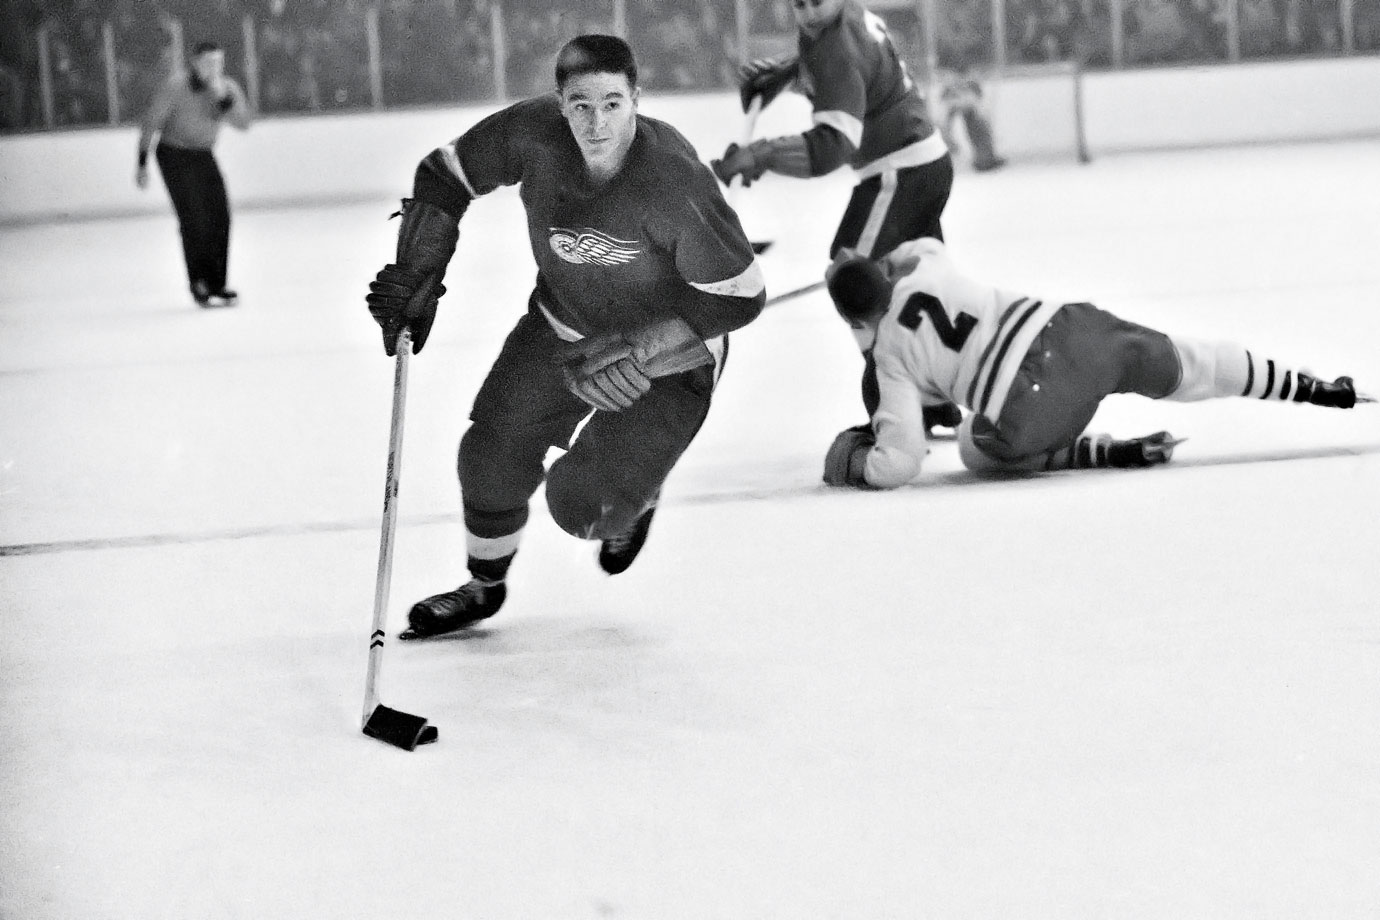 Pronovost played in 11 All-Star Games and won five Cups, including four with Detroit and one with Toronto. A former forward, he played both positions early in his NHL career. During Toronto's Cup run in 1967, the steady Pronovost was on the ice for only one even-strength goal-against during the entire postseason.